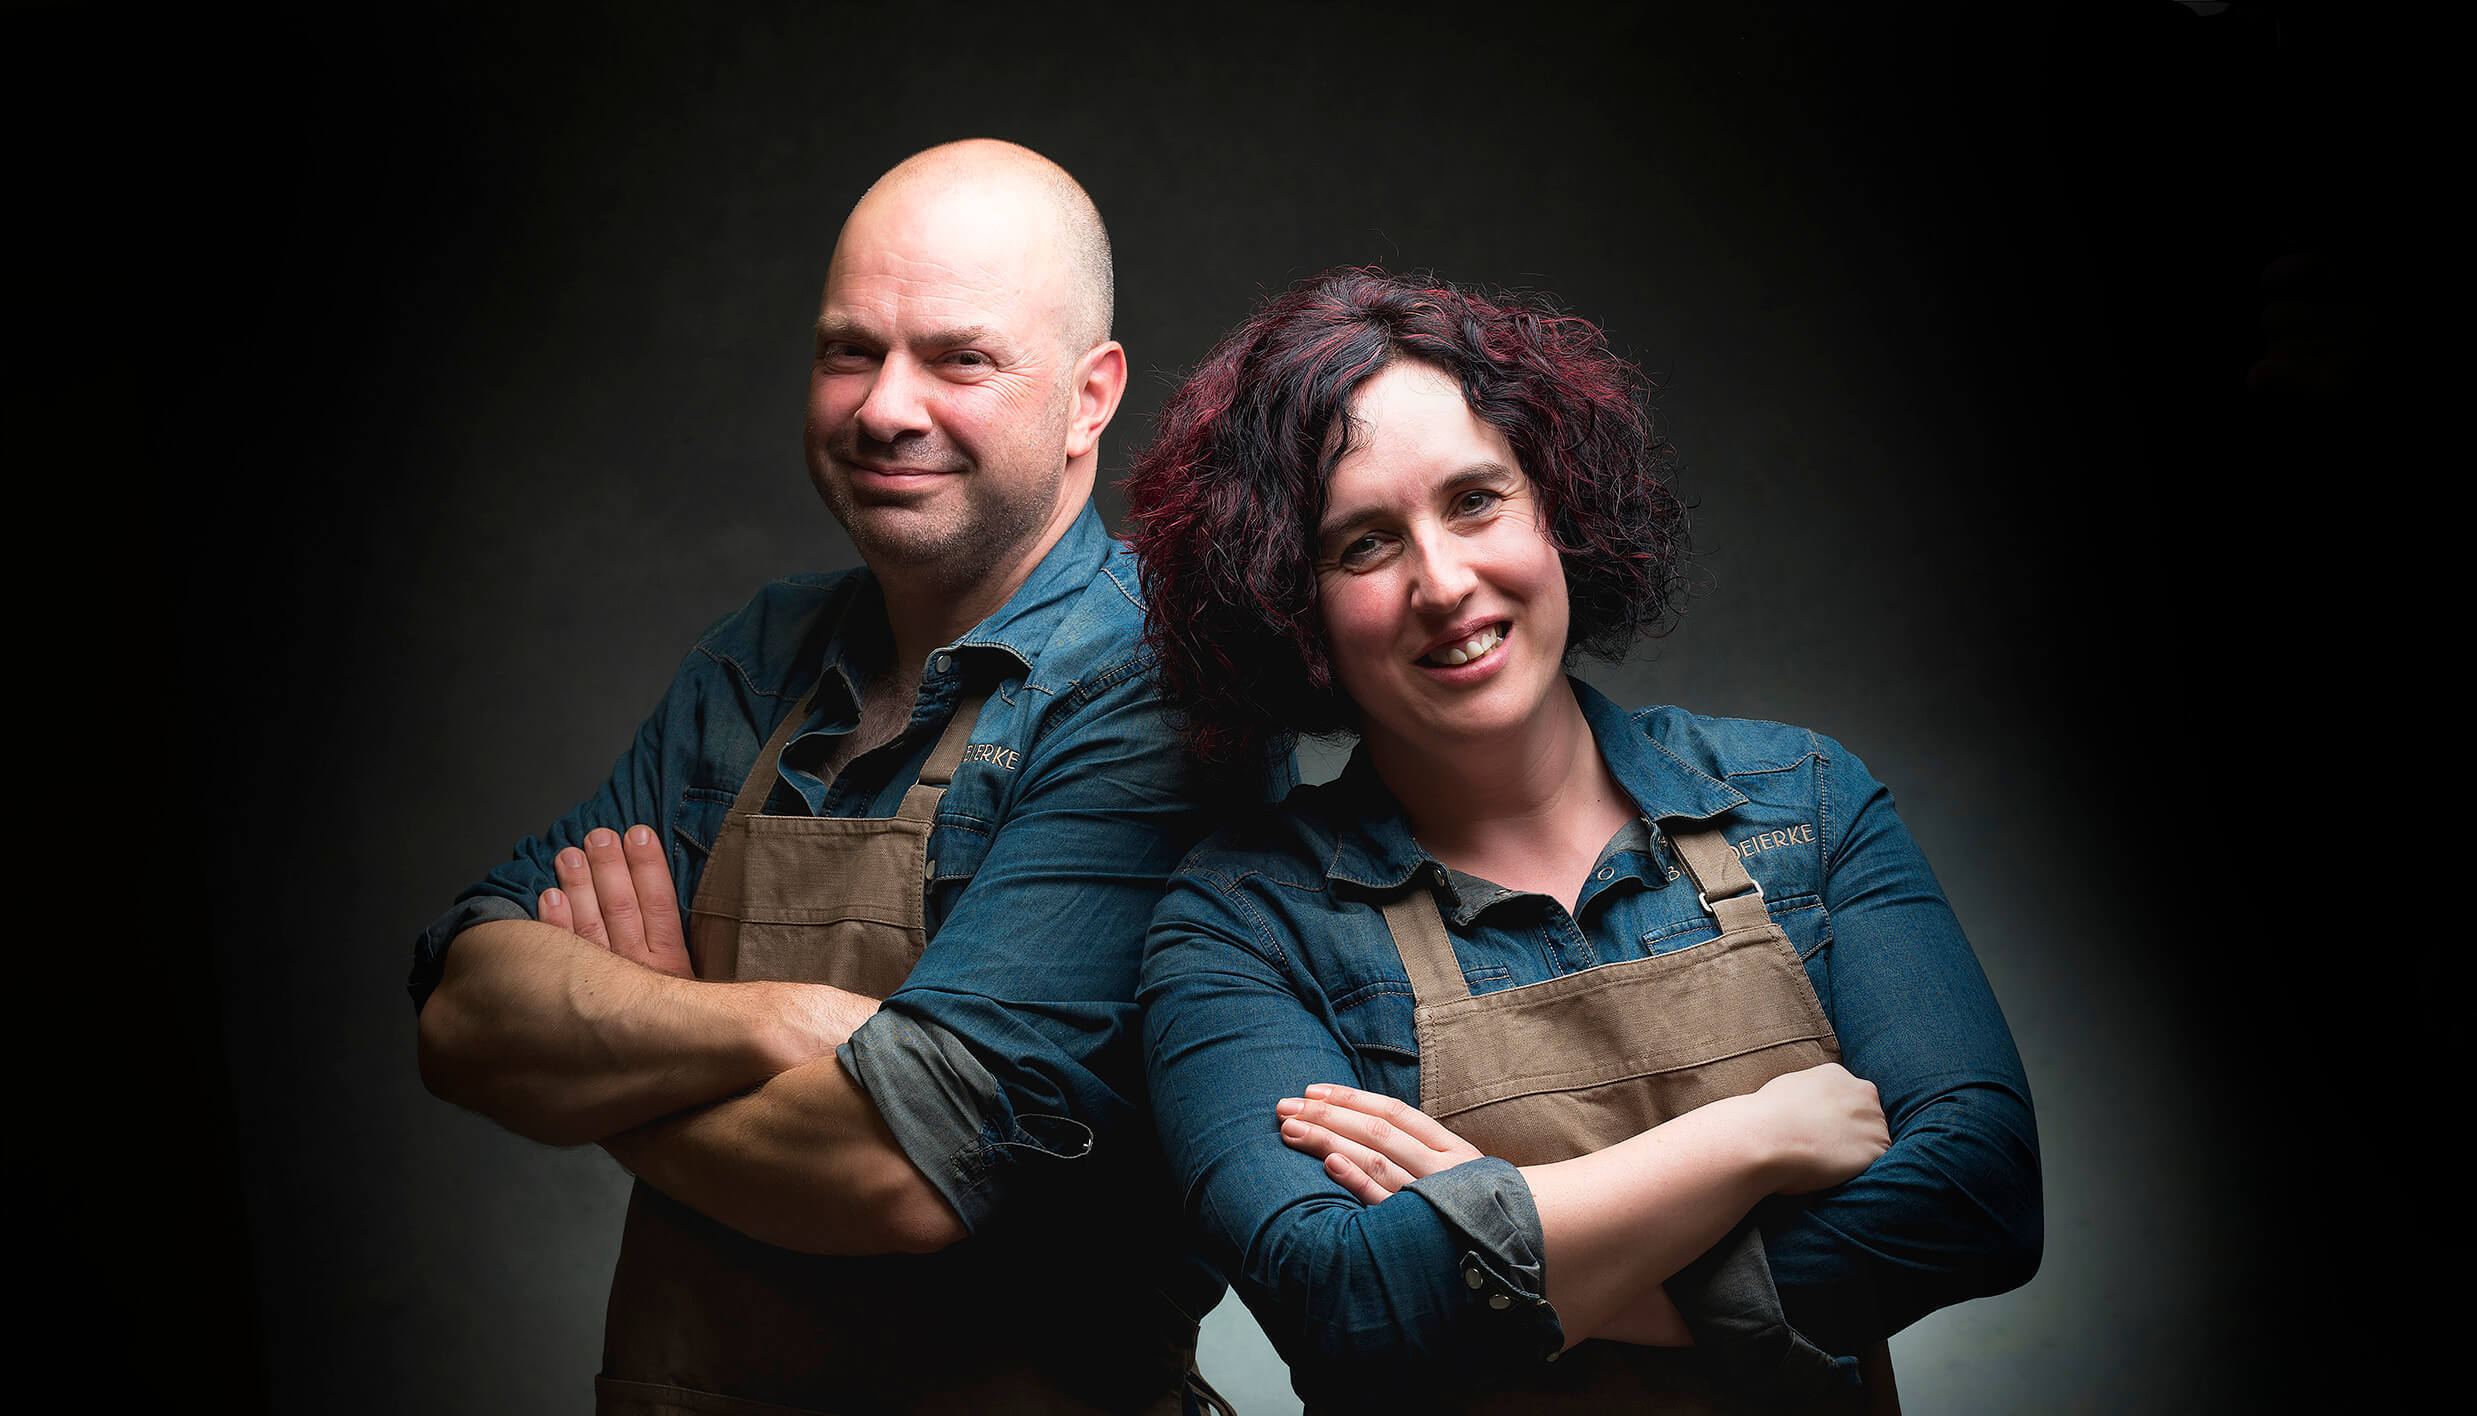 Barbeknoeierke-over-ons-Jo-Heidi